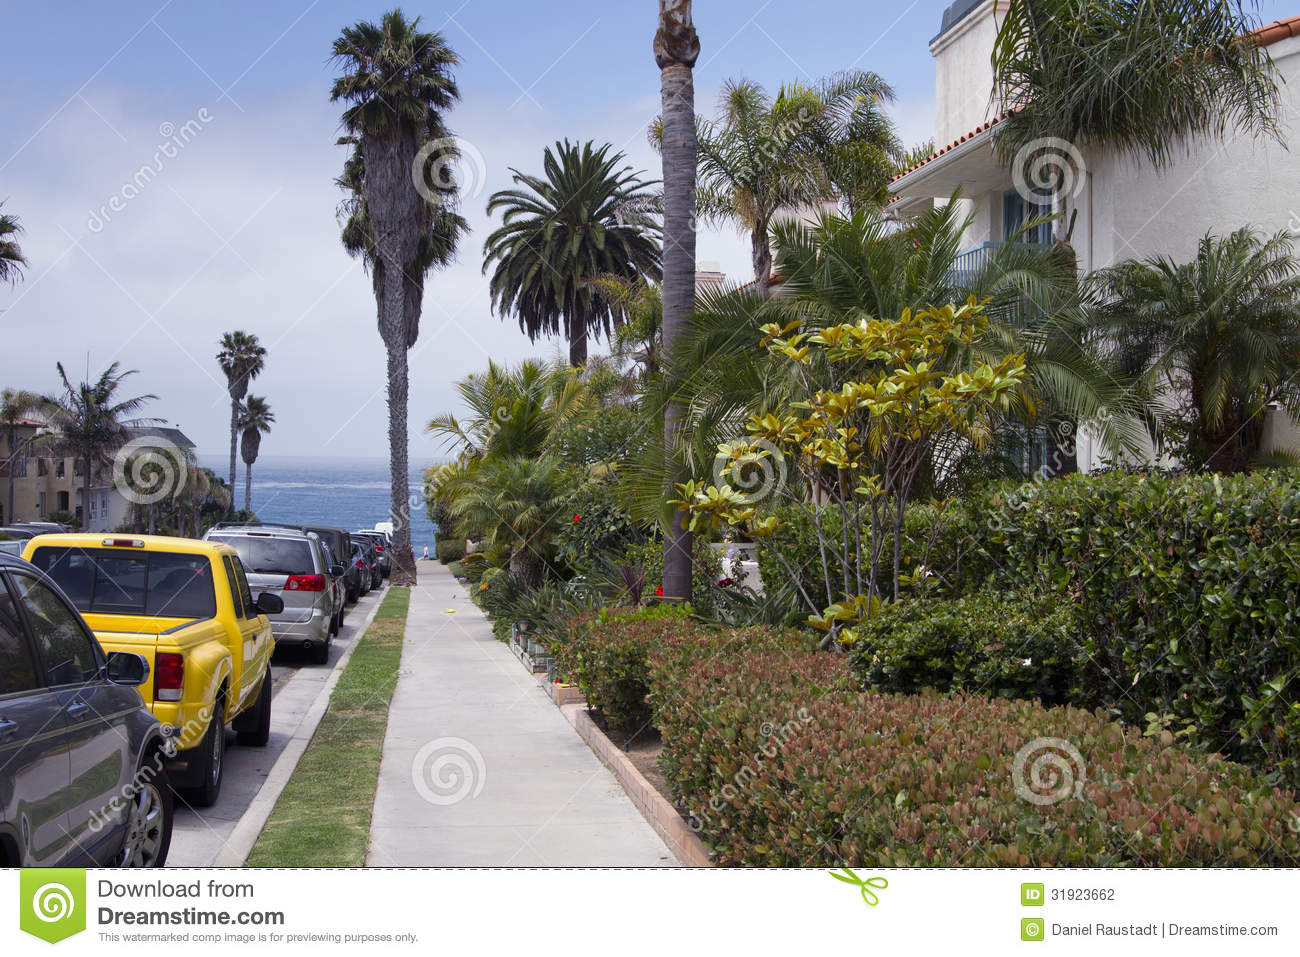 house design australia free with Stock Photography Southern California Beach Houses Town Oceanfront Luxury Homes Overlooking Pacific Ocean Near La Jolla Image31923662 on Royalty Free Stock Photography Two Balconies Potted Plants Flowers Located Old Stone Faade Spanish Town  illas North Spain Image31333867 additionally Architect Robin Williams Australian Beach House moreover Royalty Free Stock Photography Qantas A380 Airbus Sydney Airport Australia Image8921537 additionally 16691 in addition Open House Geelong.